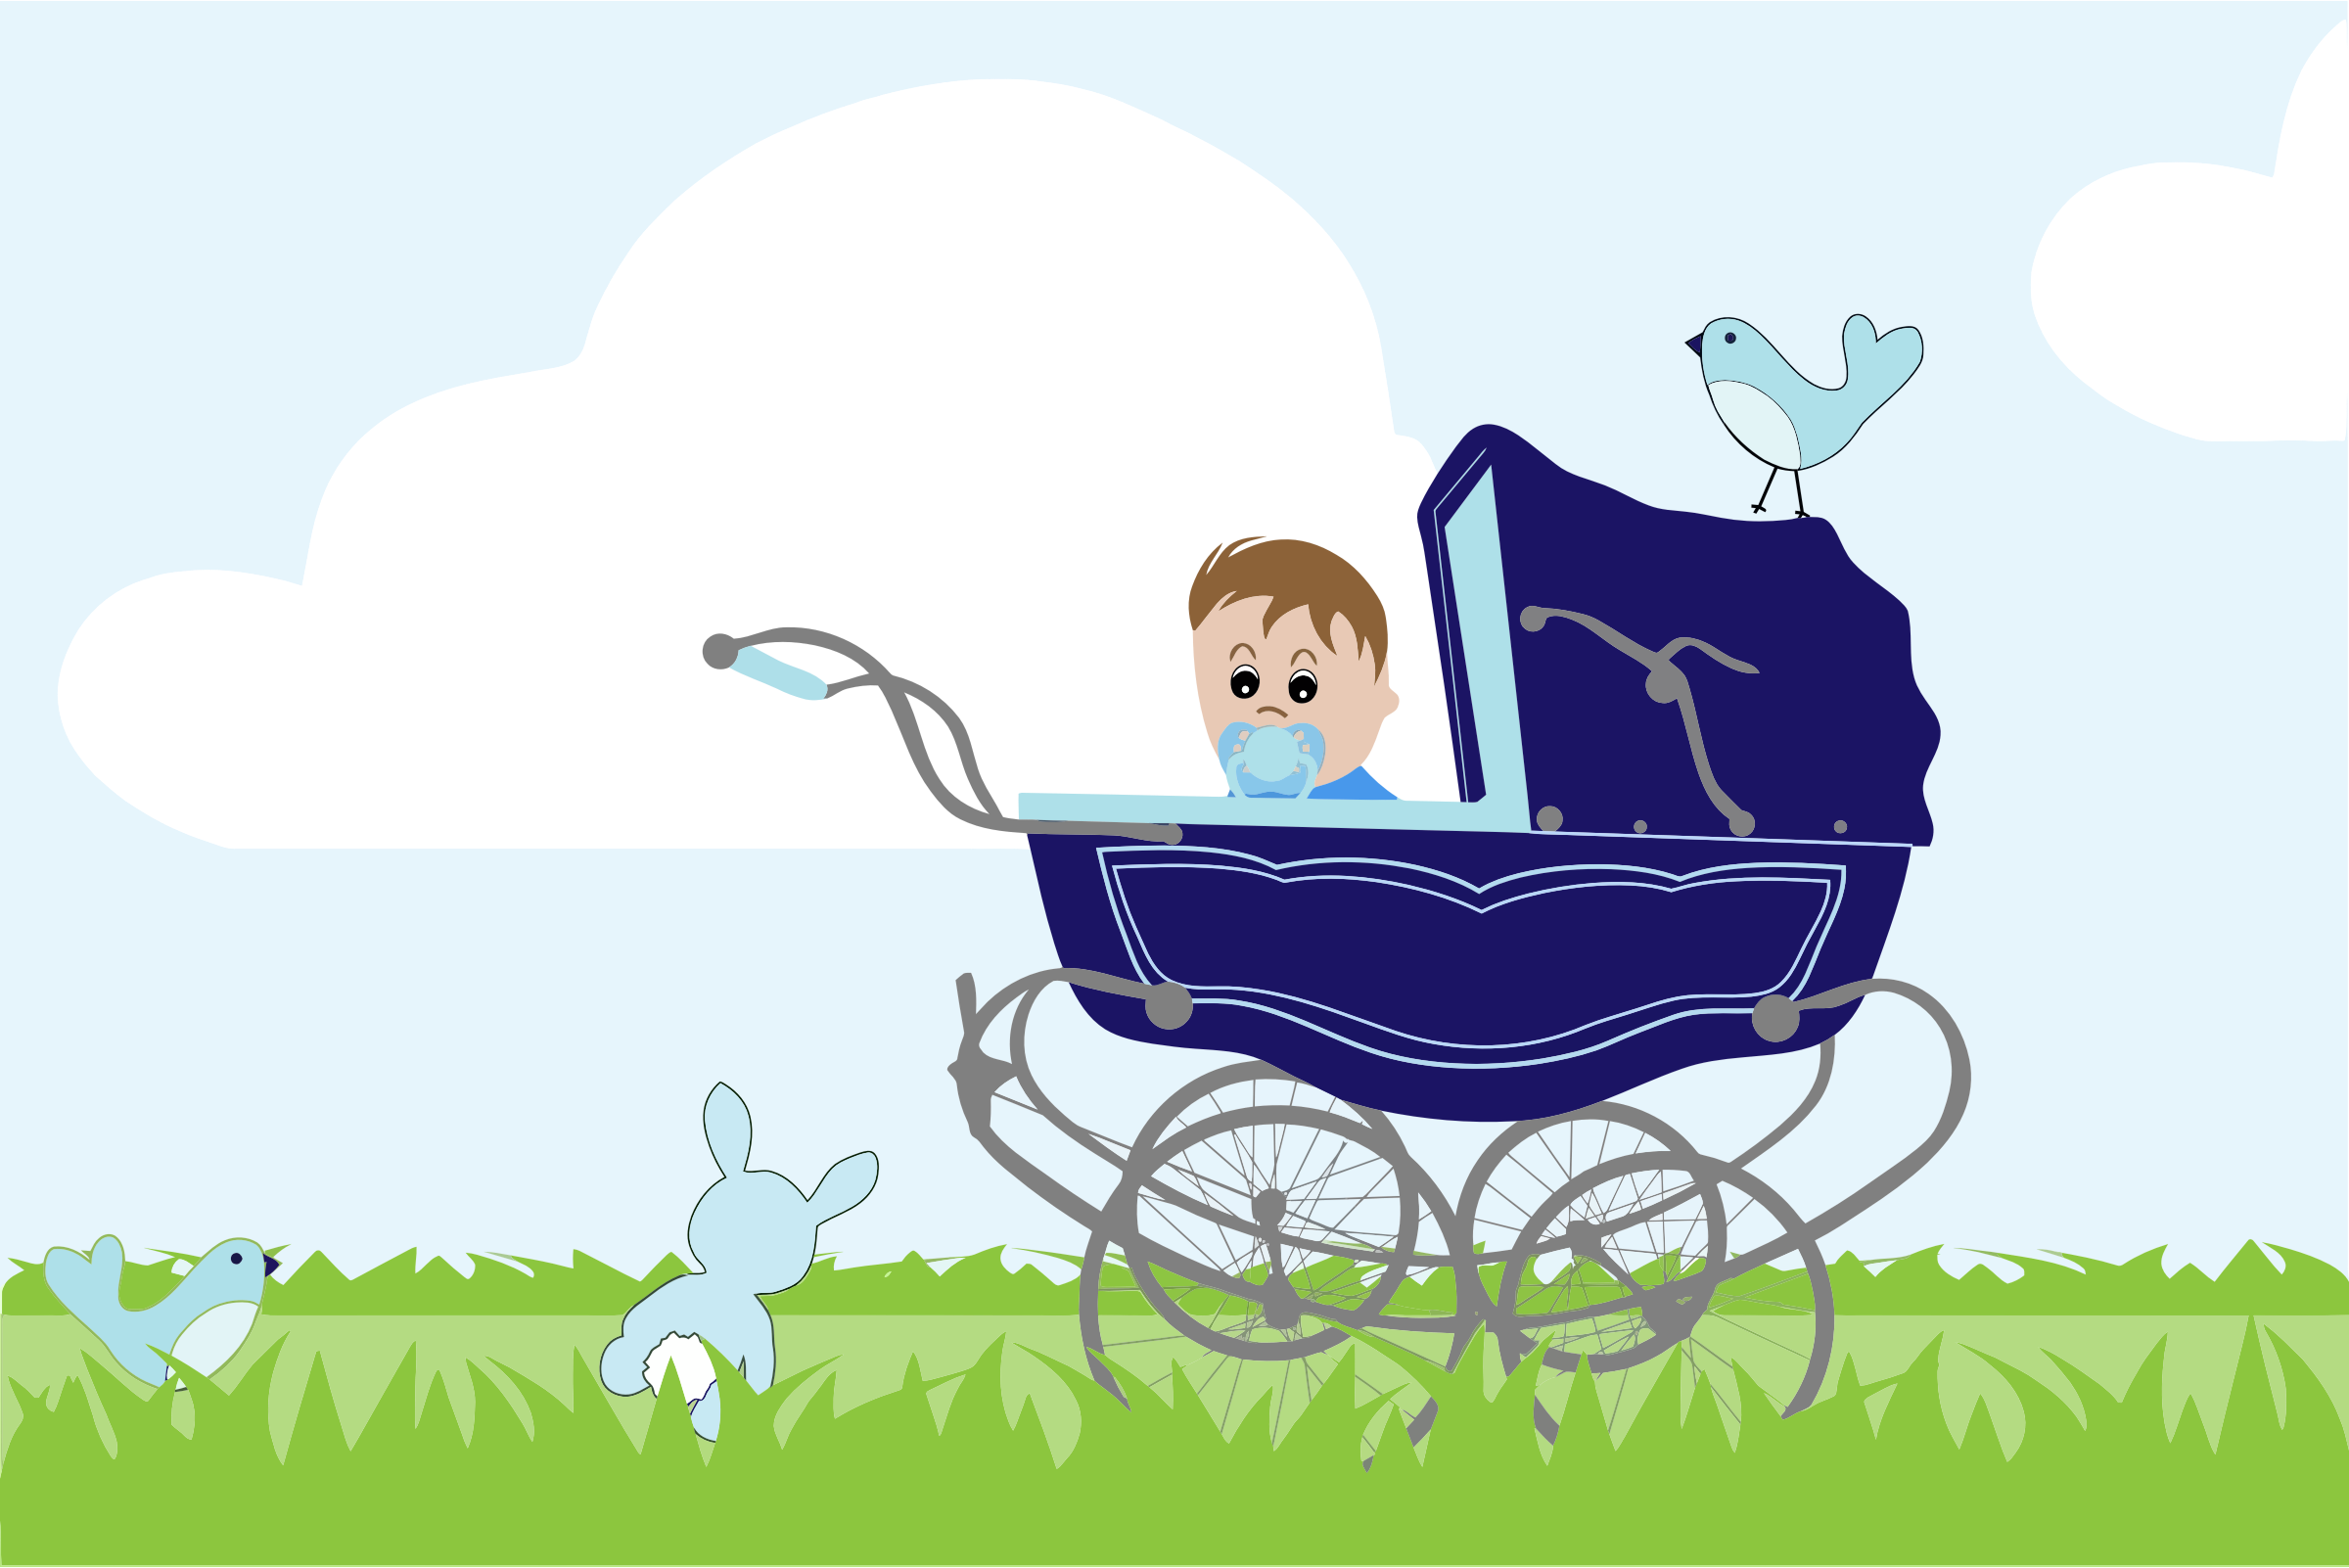 clipart baby boy stroller in the field. Black Bedroom Furniture Sets. Home Design Ideas